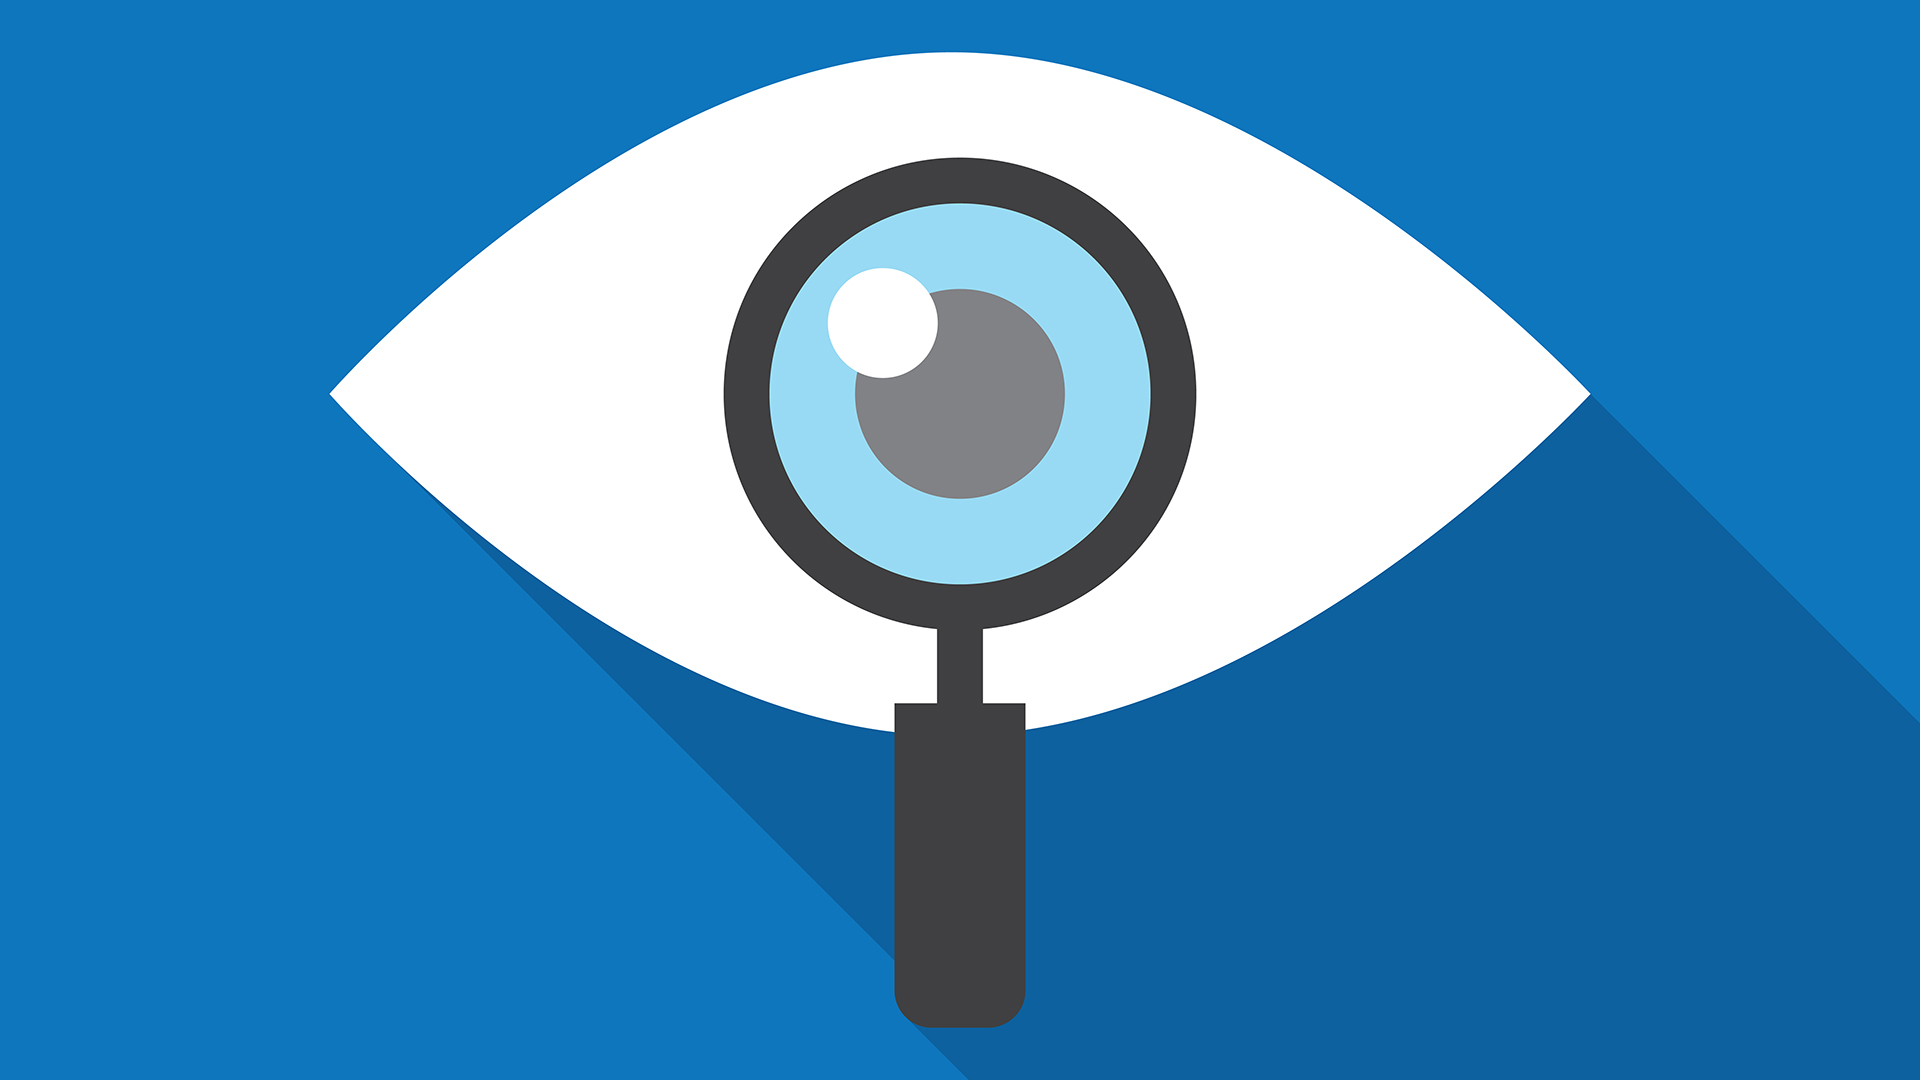 an eye with a magnifying glass held up to the pupil on a blue background